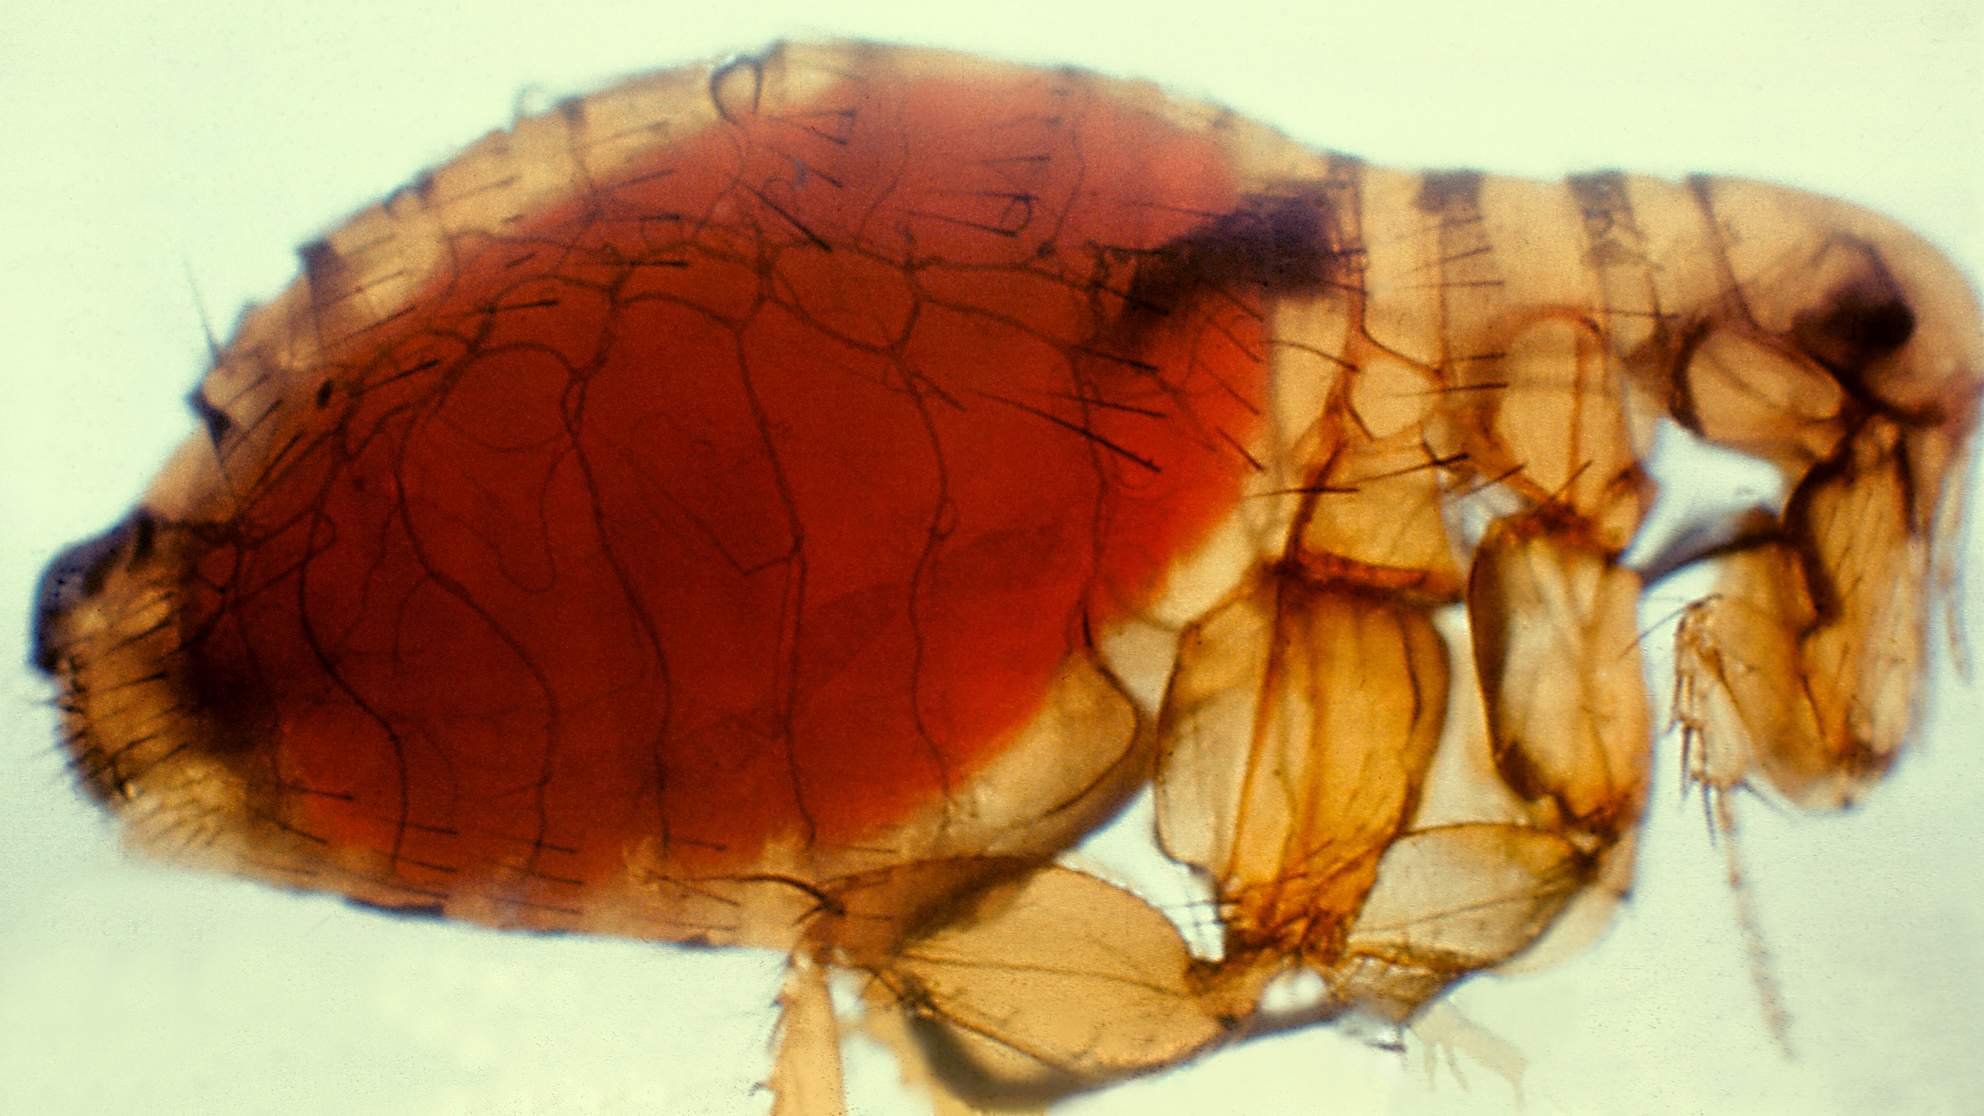 Flea-Borne Typhus Cases Are Rising in Los Angeles. Here's What You Need to Know